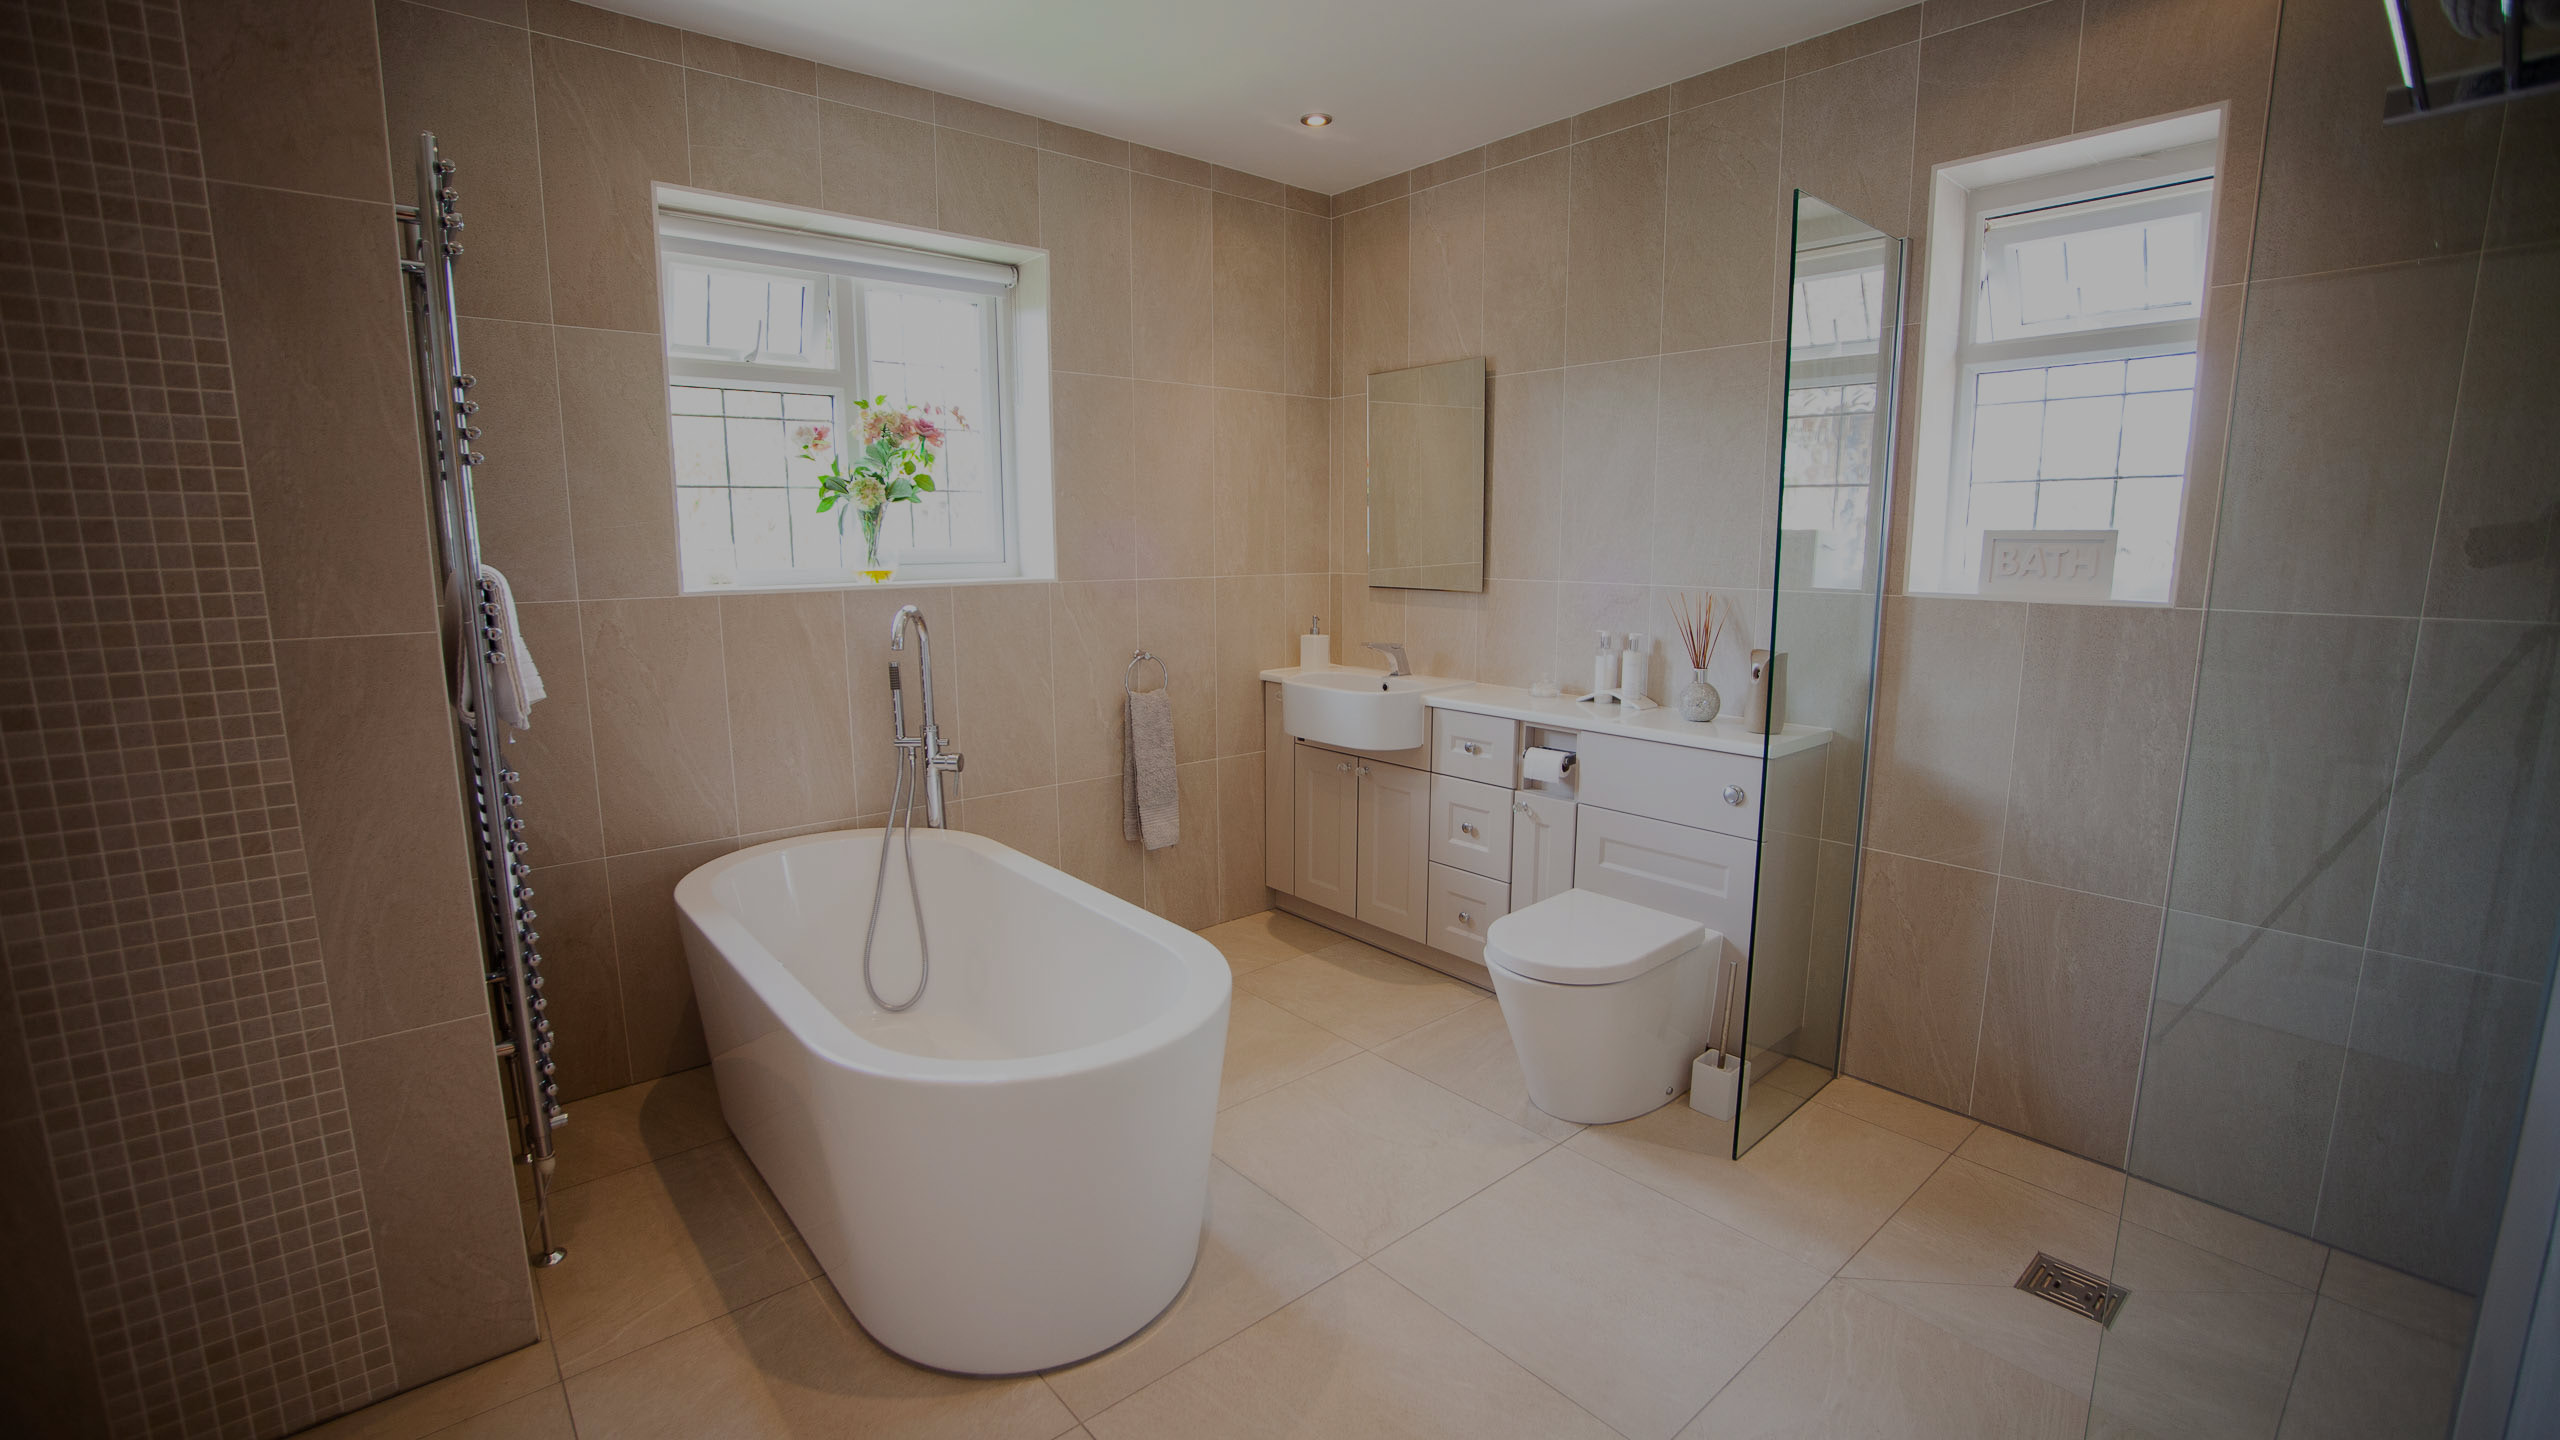 Withdean Avenue - bathroom installation by RJ Steele building contractors